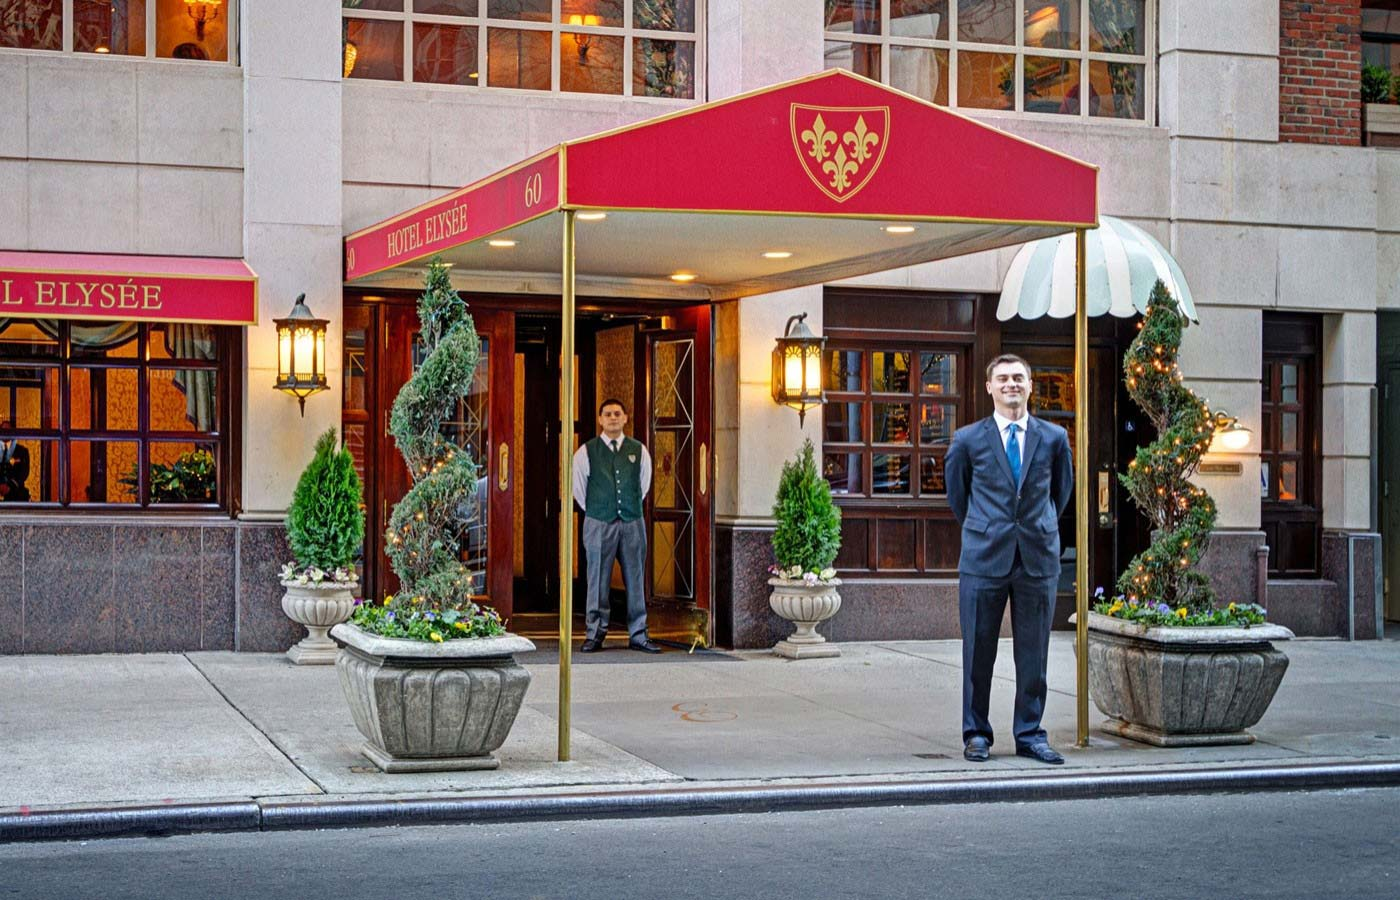 Hotel elysee the hot zone for Best boutique hotels nyc 2016